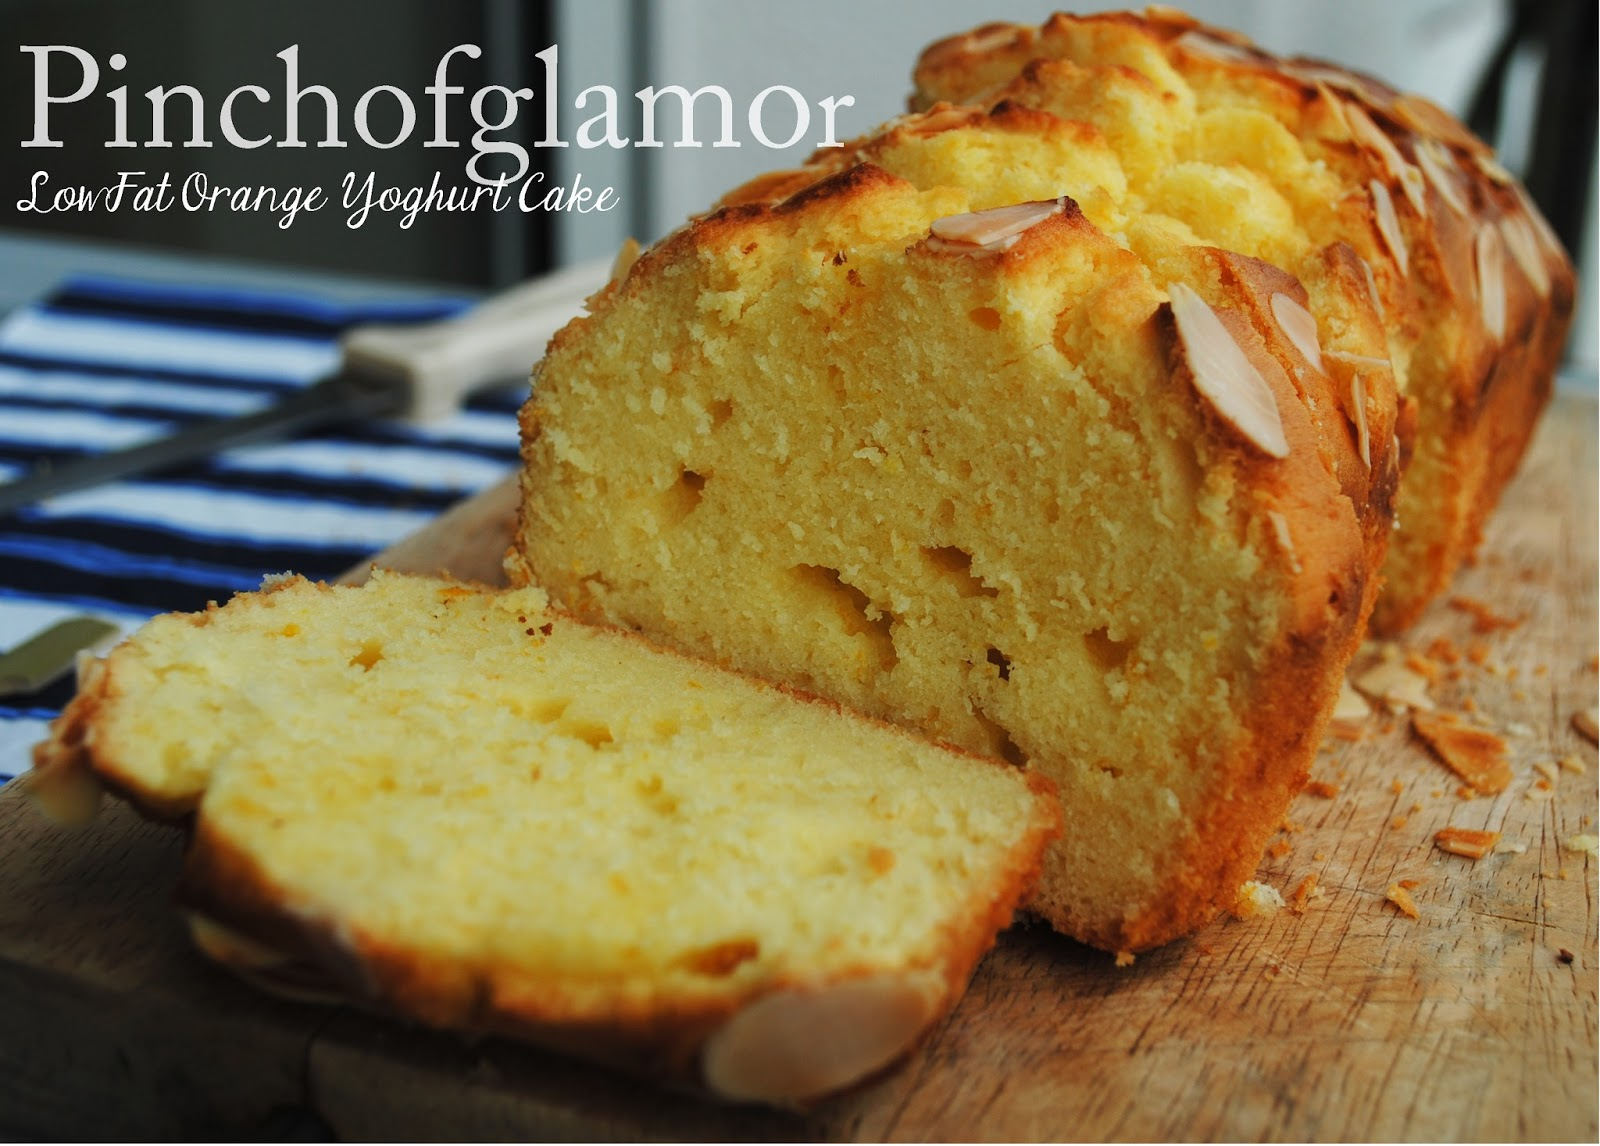 Low Fat Yogurt Cake Recipes: Pinchofglamor: Low Fat Orange Yoghurt Cake